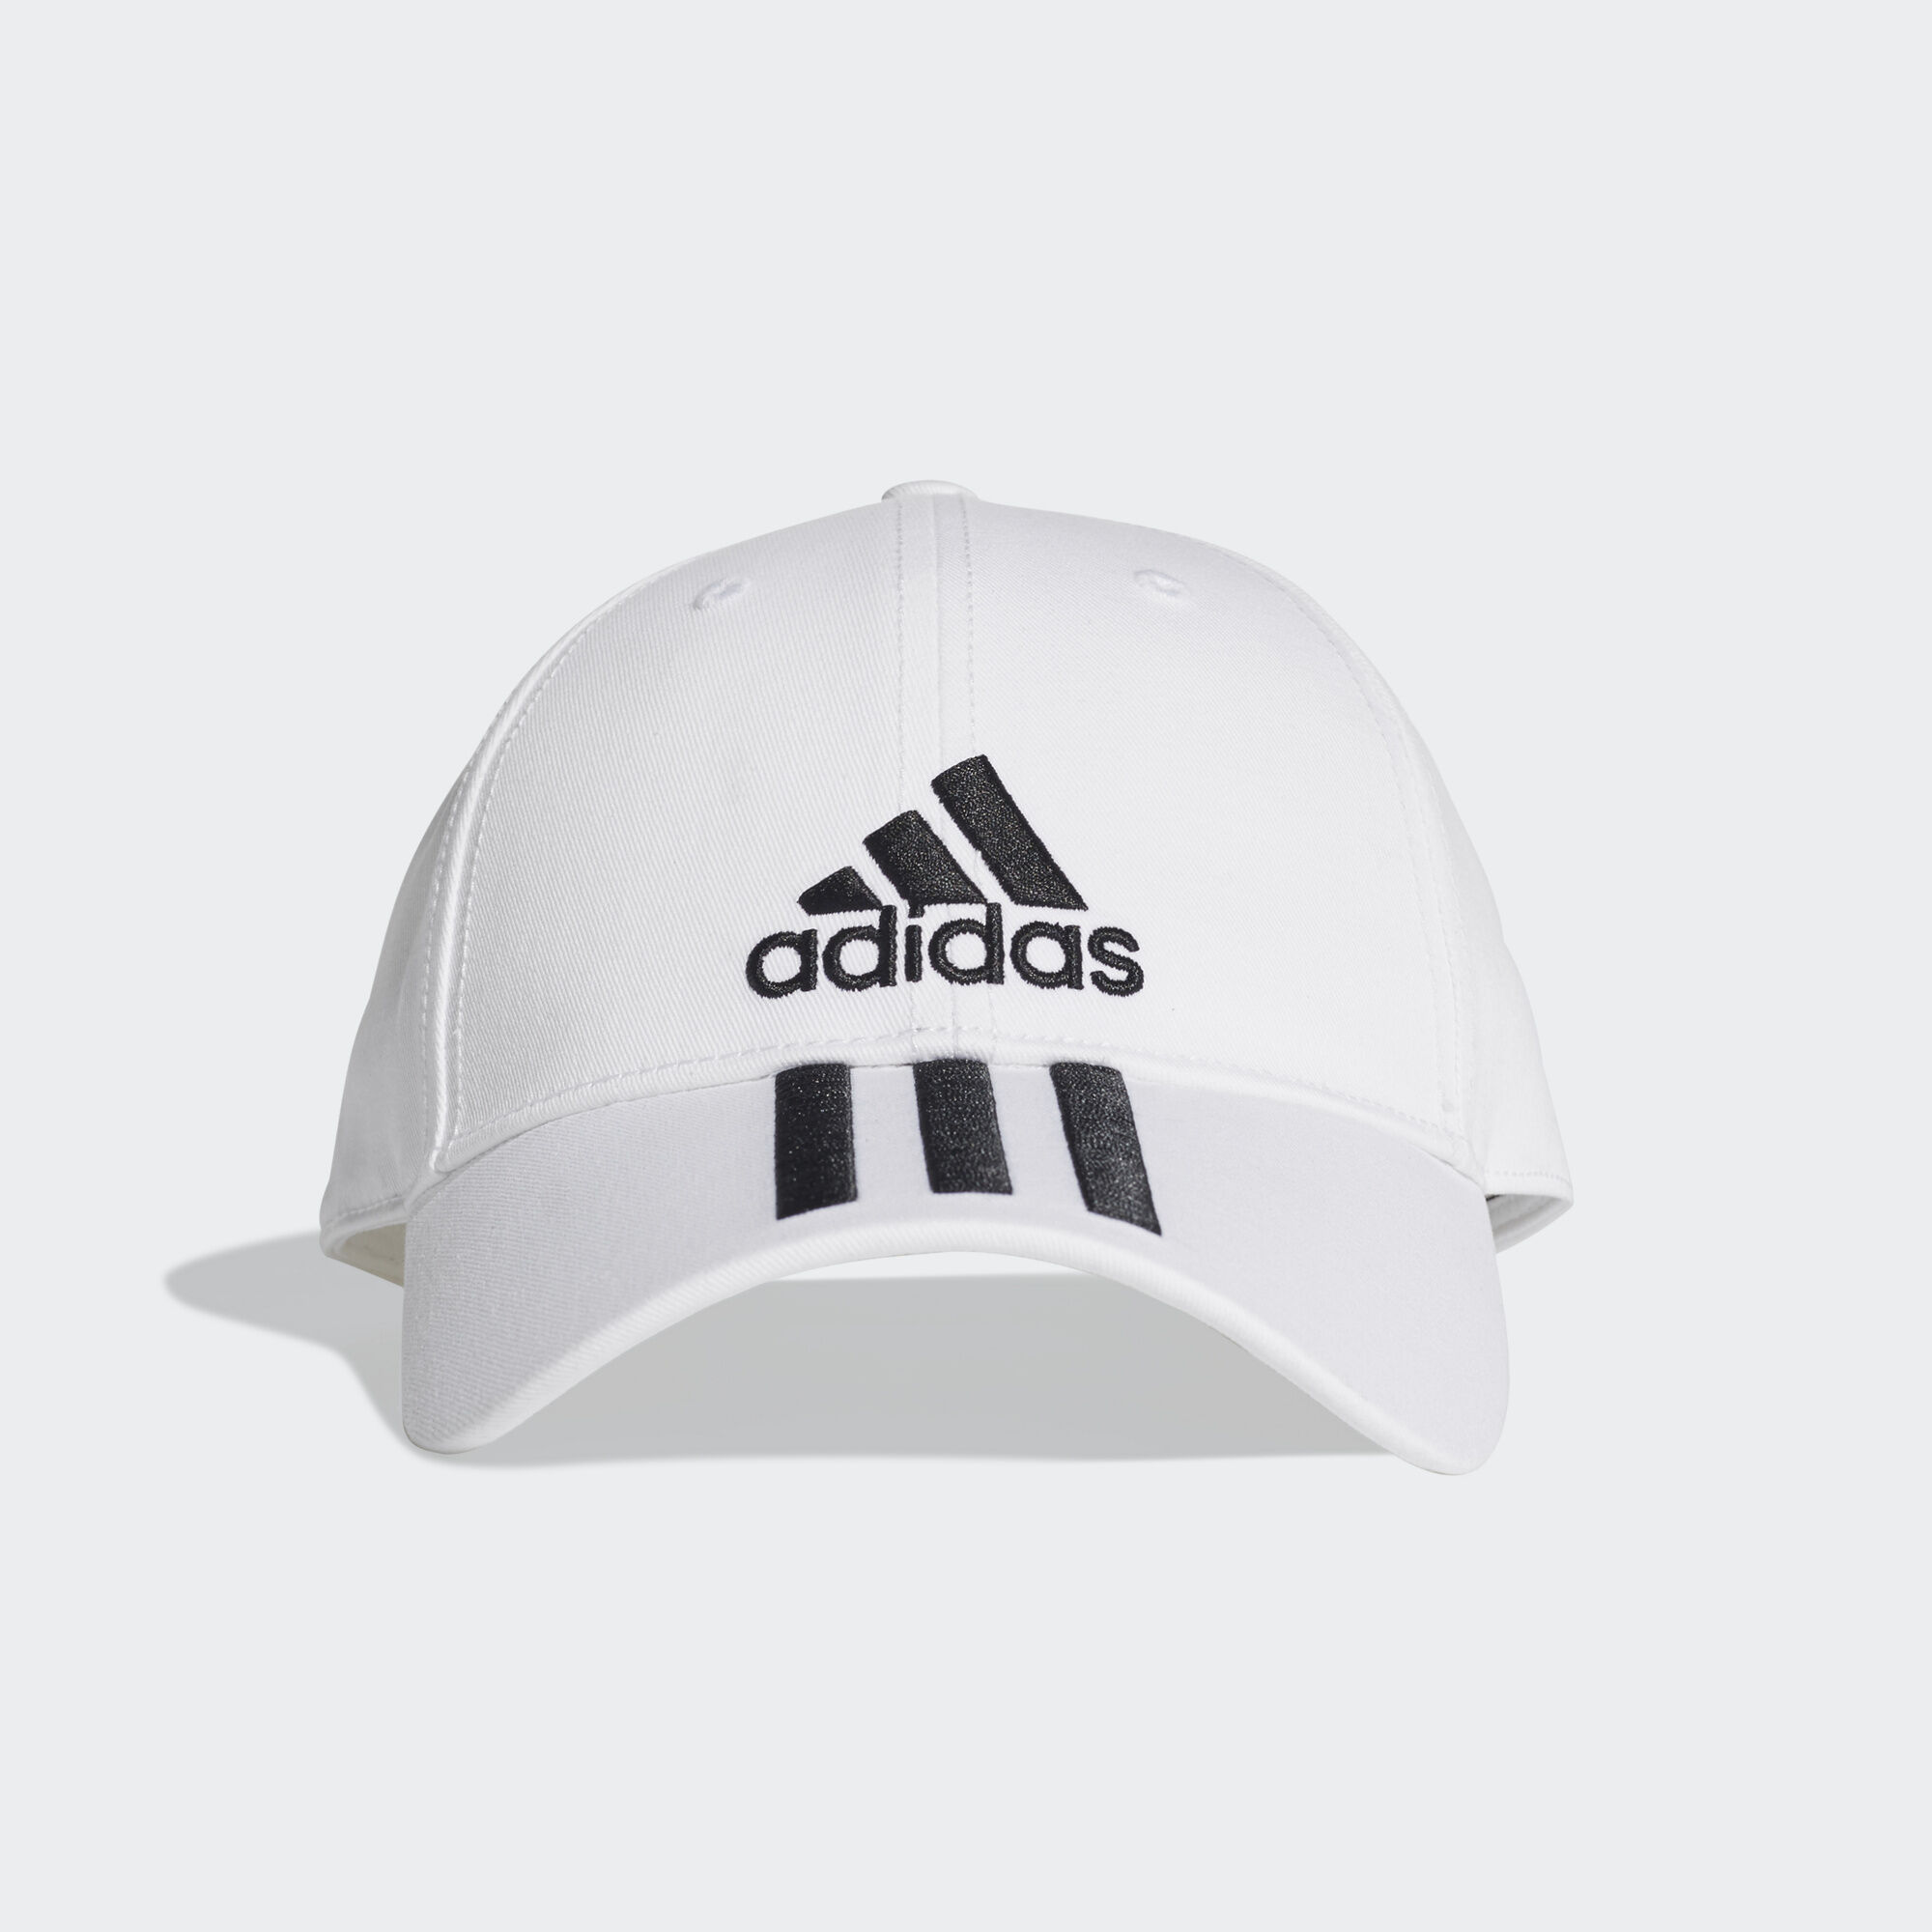 adidas - Six-Panel Classic 3-Stripes Cap White   Black   Black DU0197 ab501ed9a673